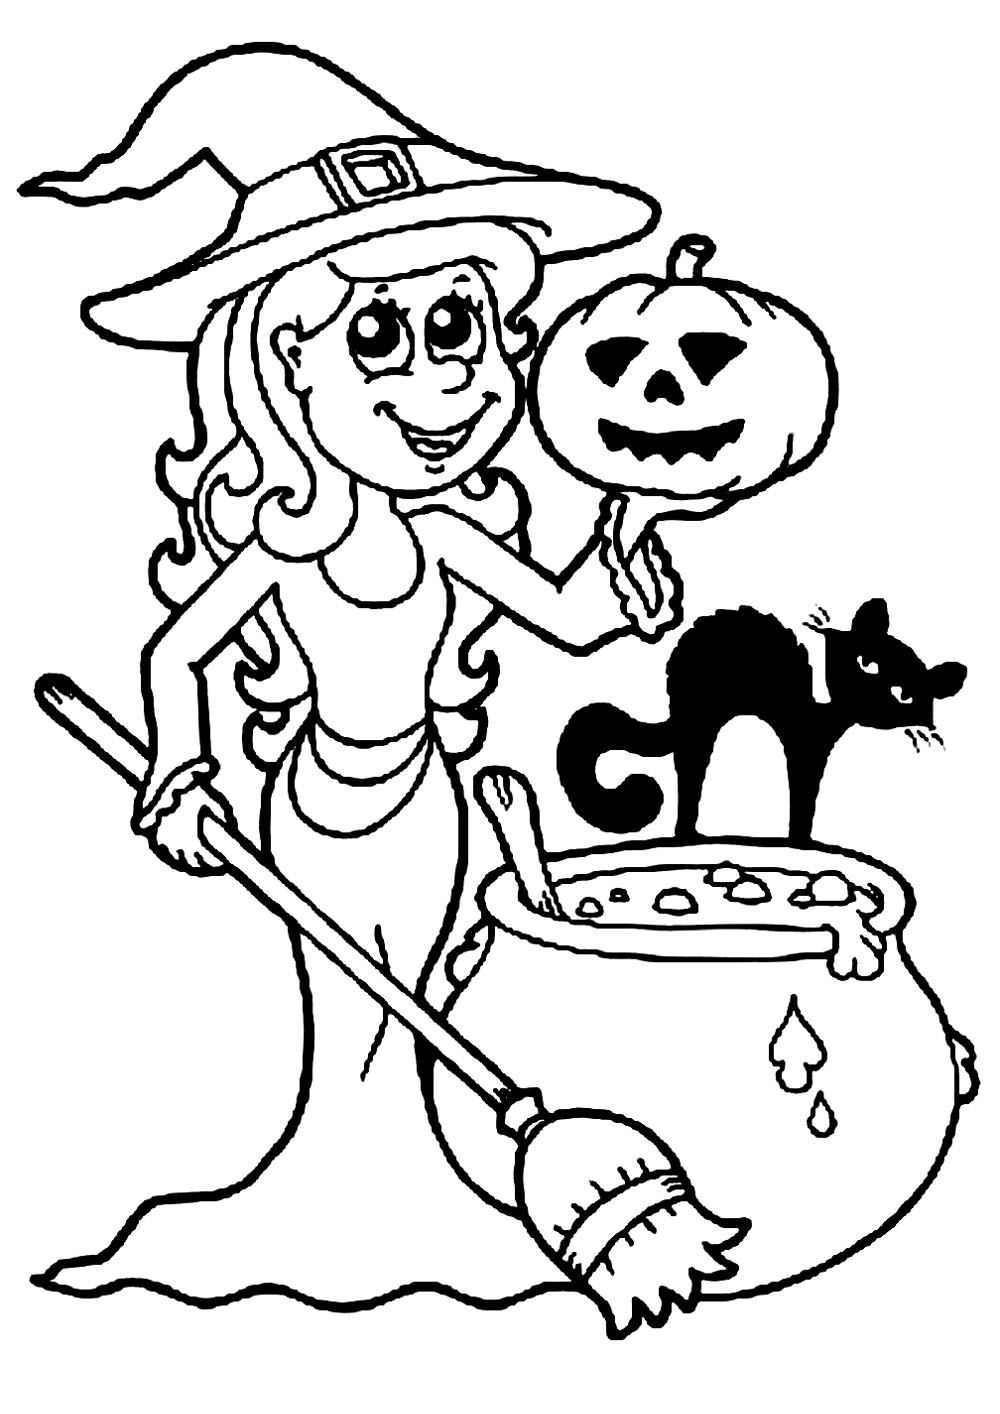 haloween coloring pages 24 free halloween coloring pages for kids honey lime pages haloween coloring